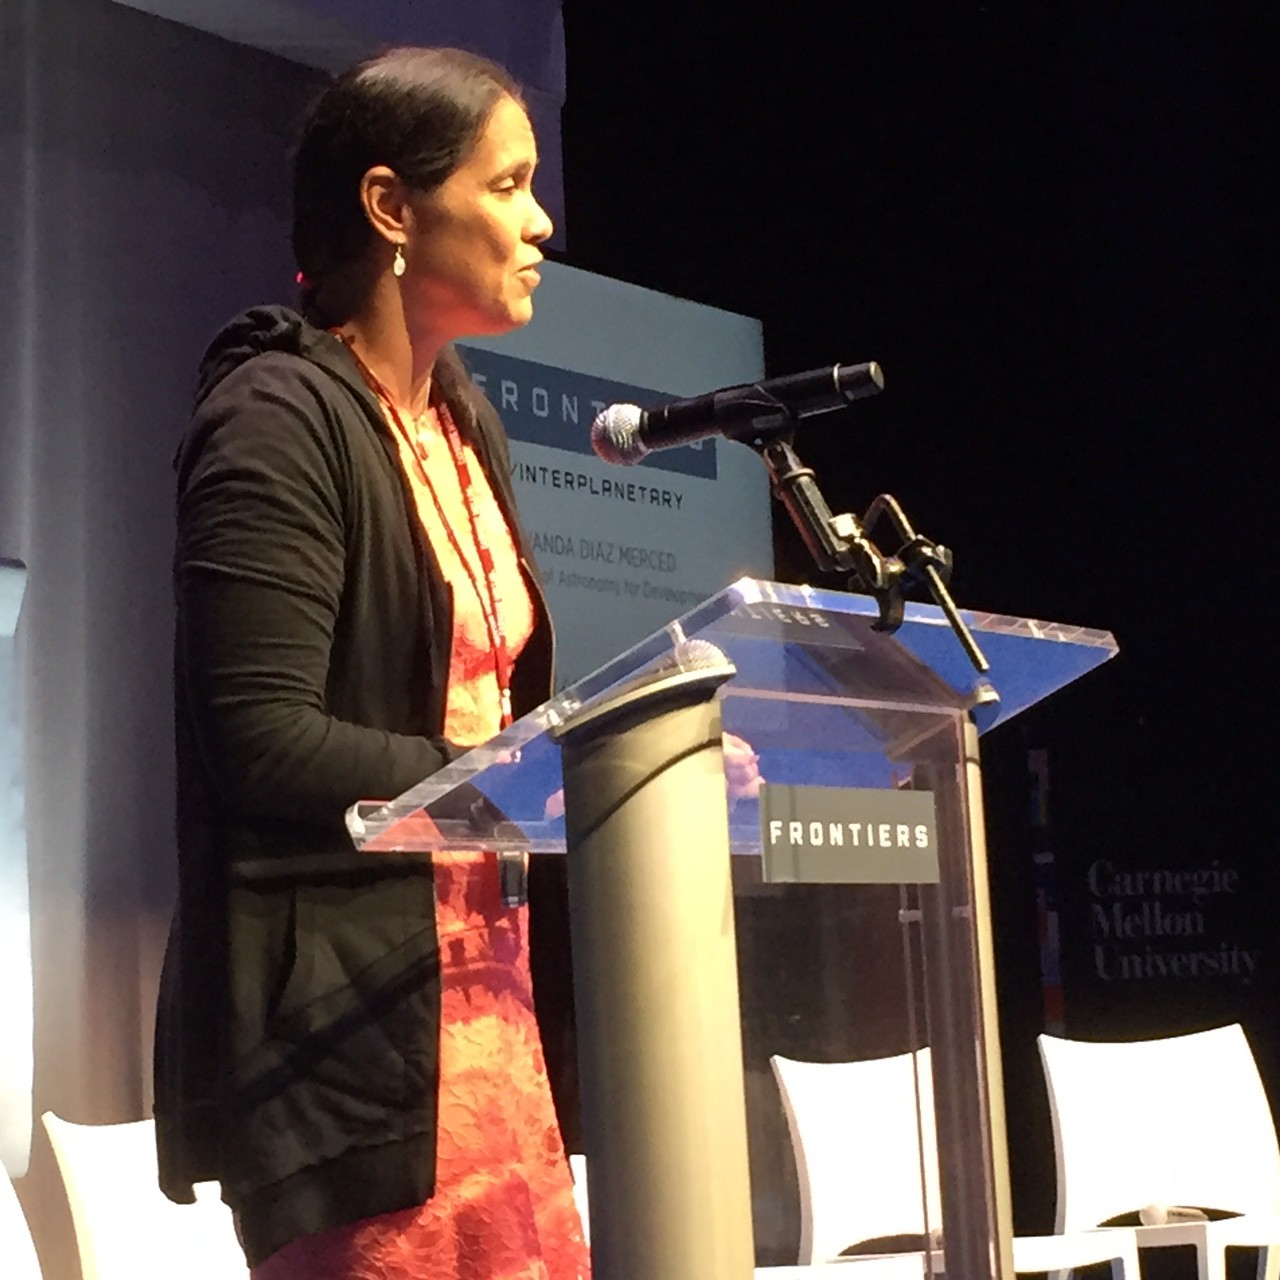 White Trash In The White House Talks Education: Wanda Diaz At White House Frontiers Conference